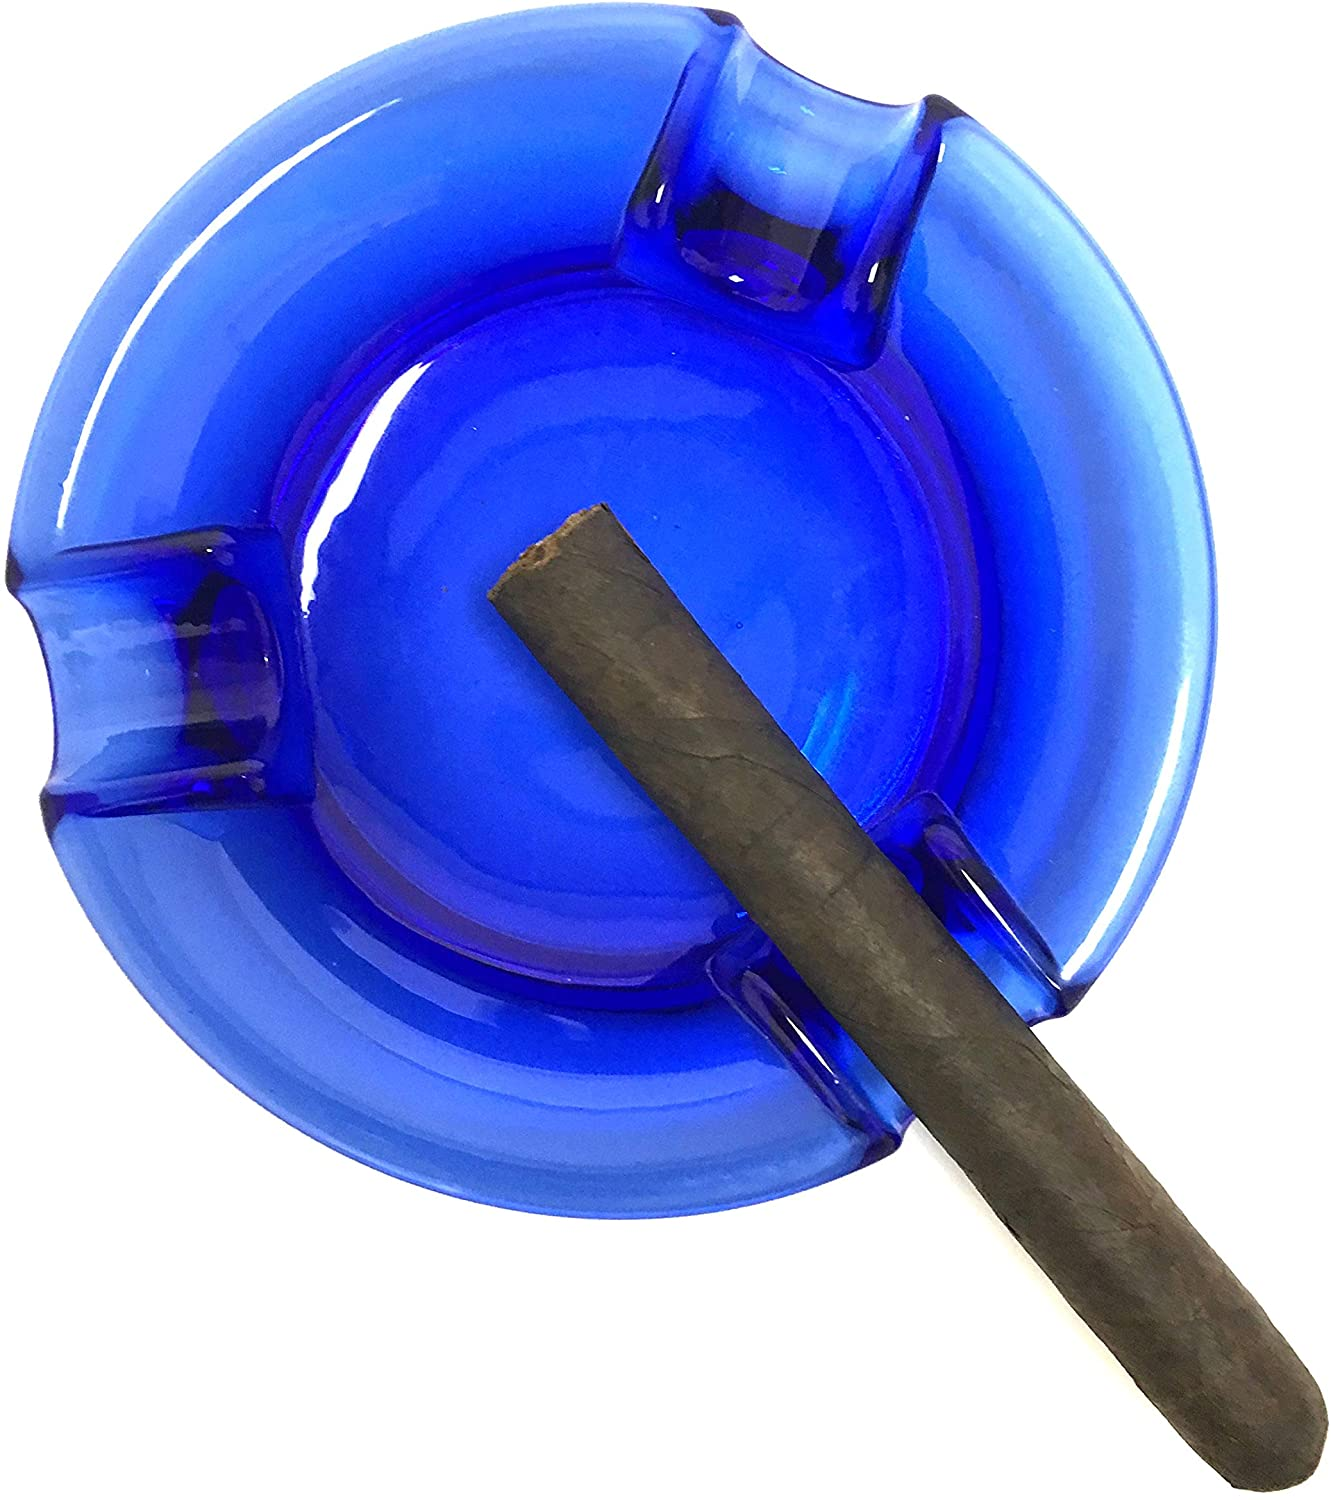 FESS Products Trident Blue Cigar Ashtray Large 6.5